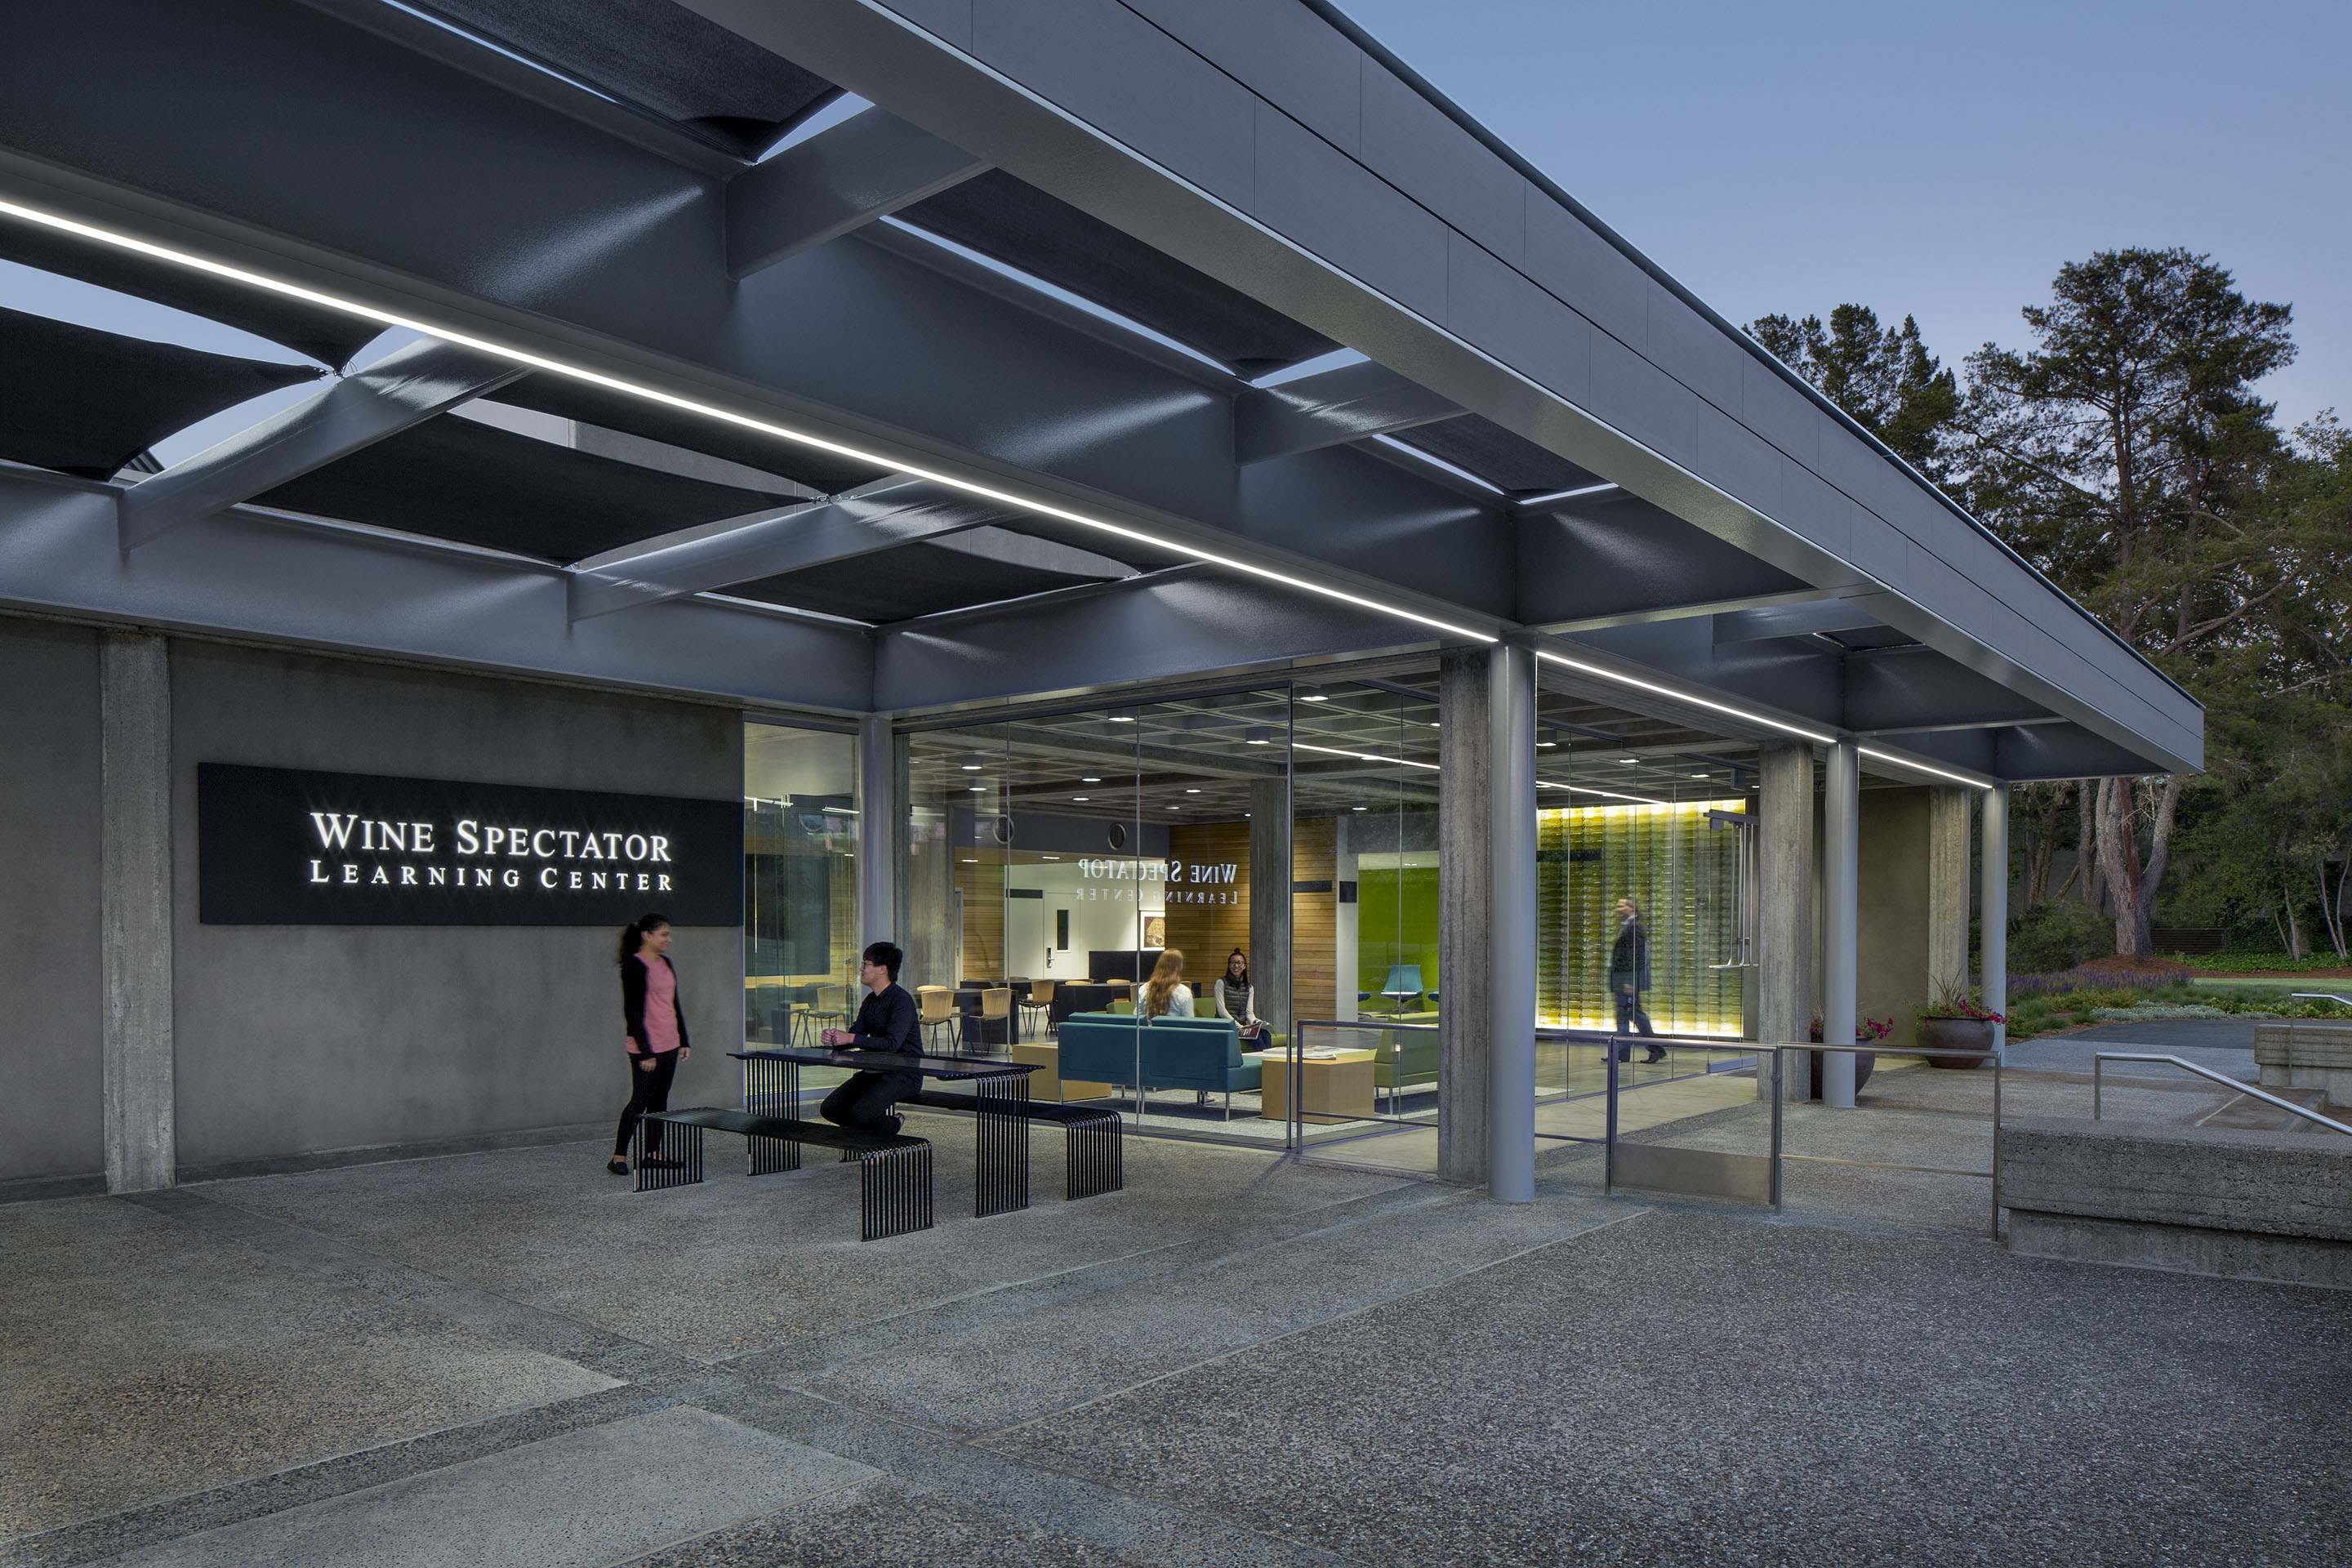 Wine Spectator Learning Center(Sonoma State University)